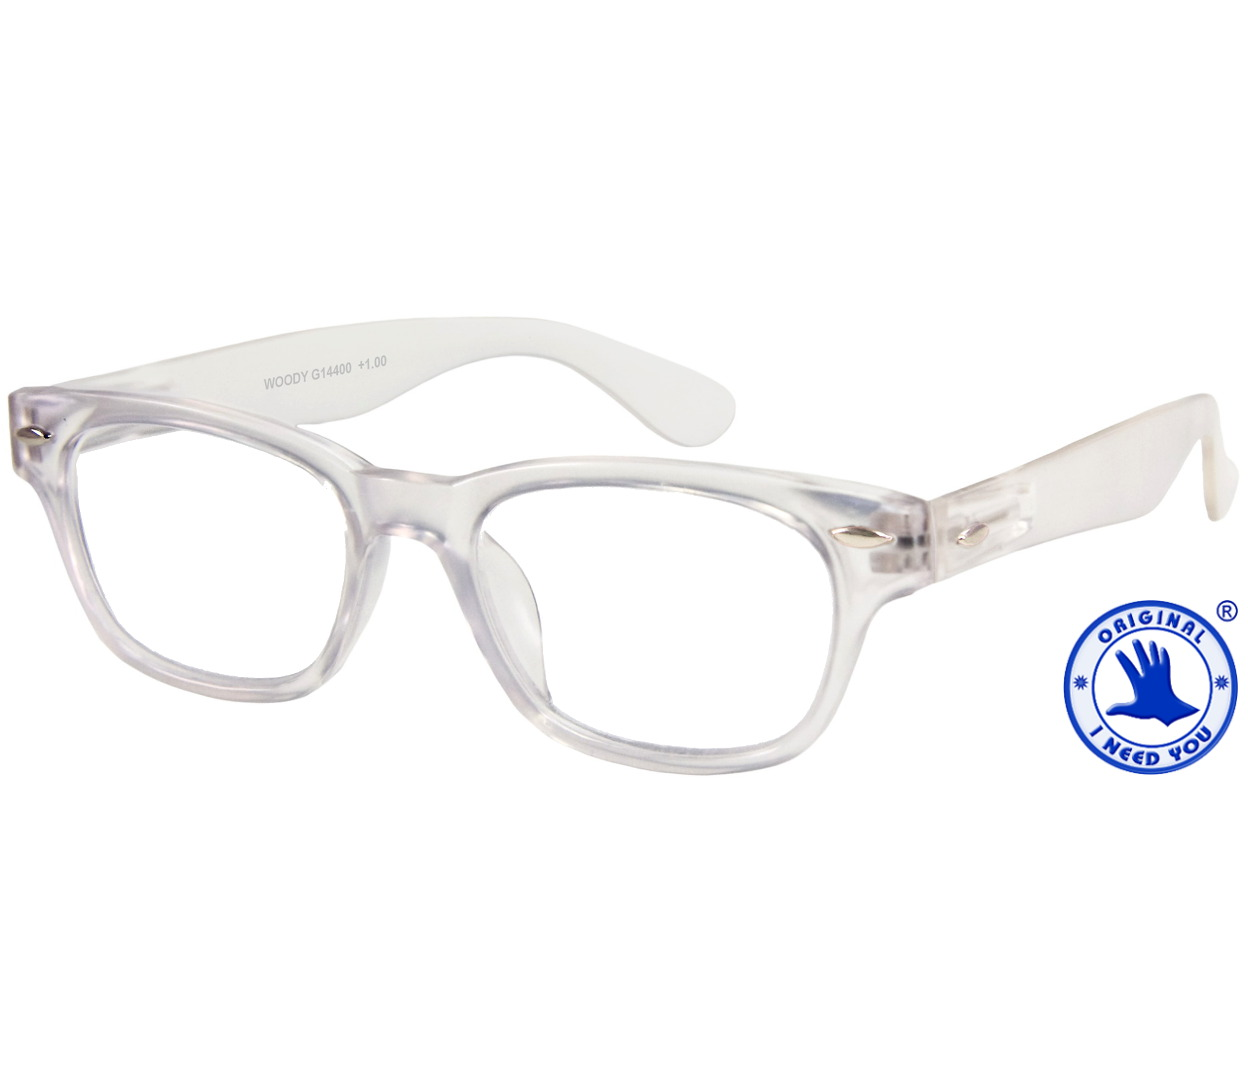 Main Image (Angle) - Woody (Clear) Retro Reading Glasses